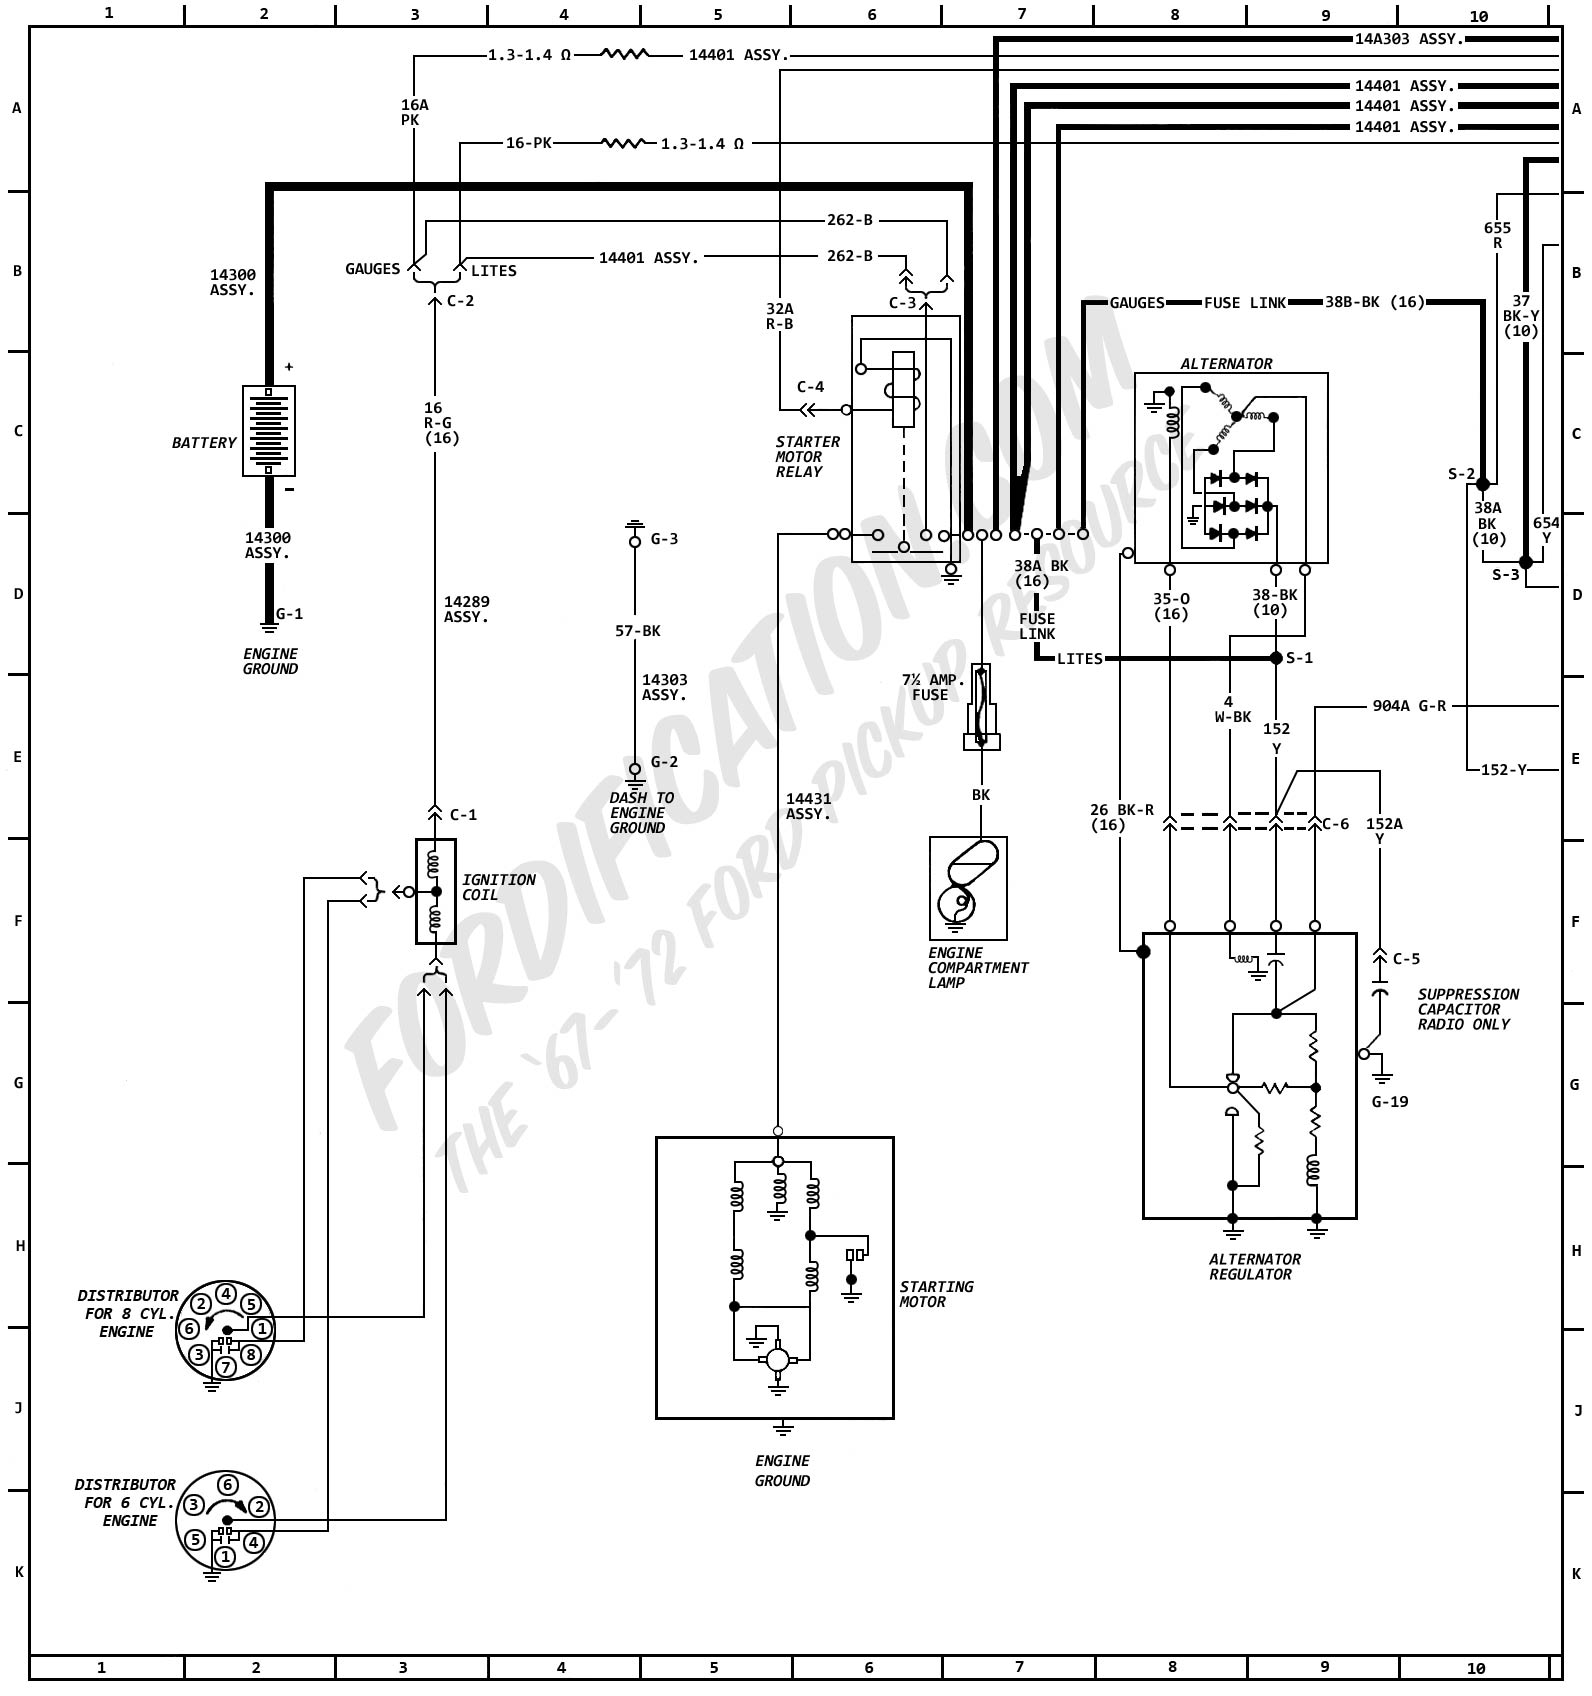 [QNCB_7524]  A5FE684 1966 Ford Truck F100 Wiring Diagram | Wiring Library | 1966 Ford F100 Blinker Switch Wiring |  | Wiring Library